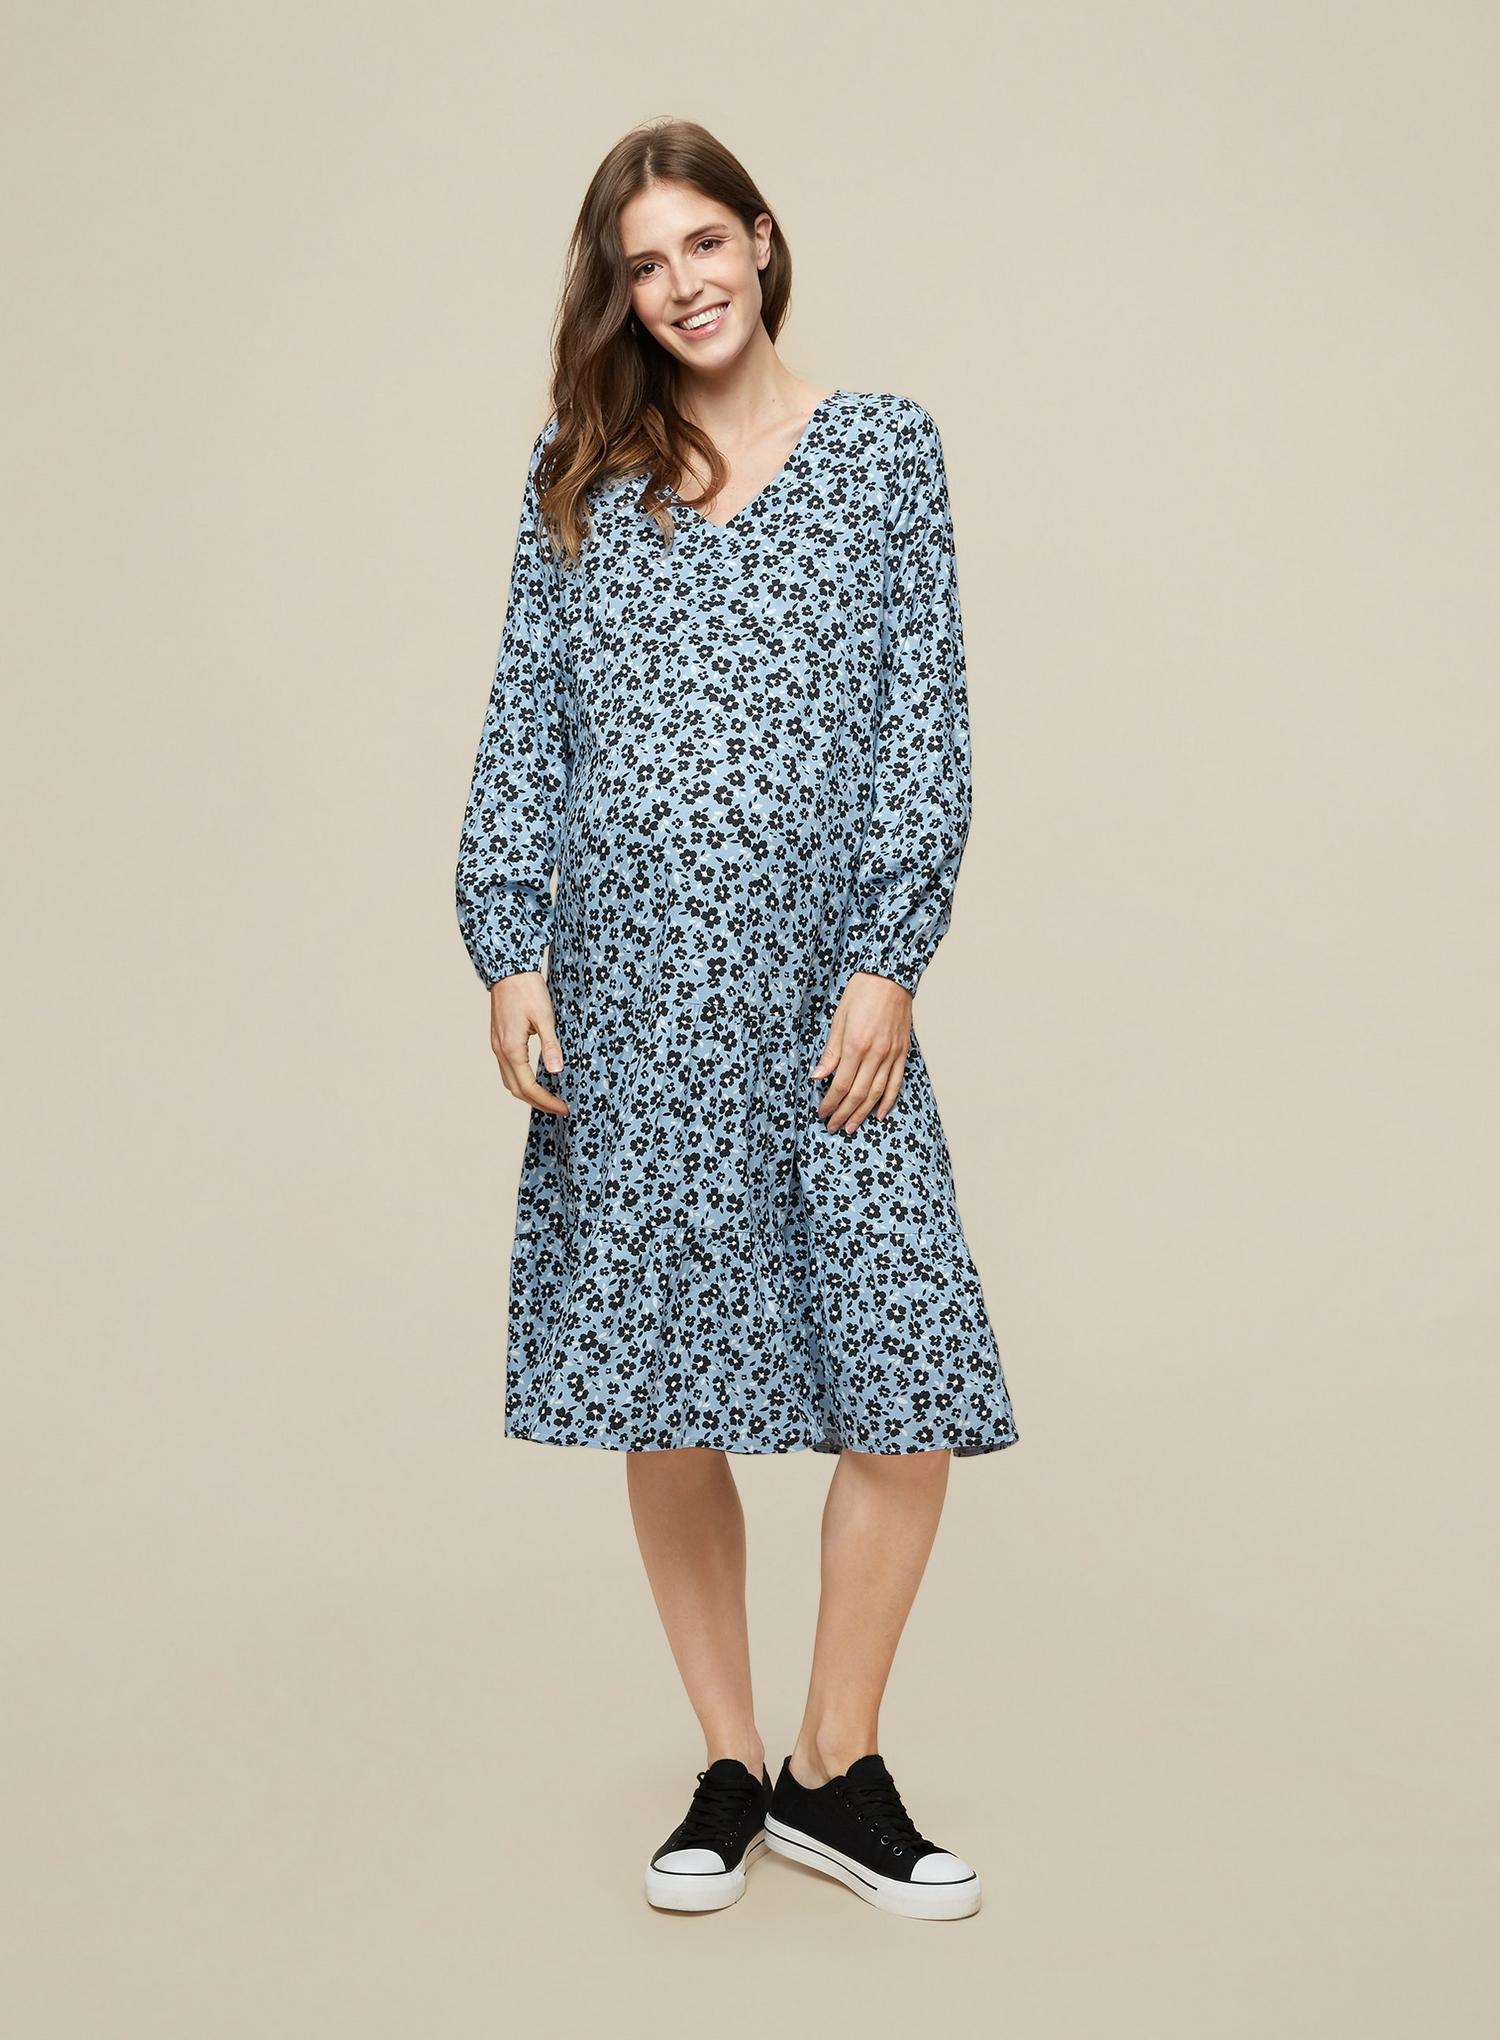 106 Maternity Blue Floral Print Dress image number 2